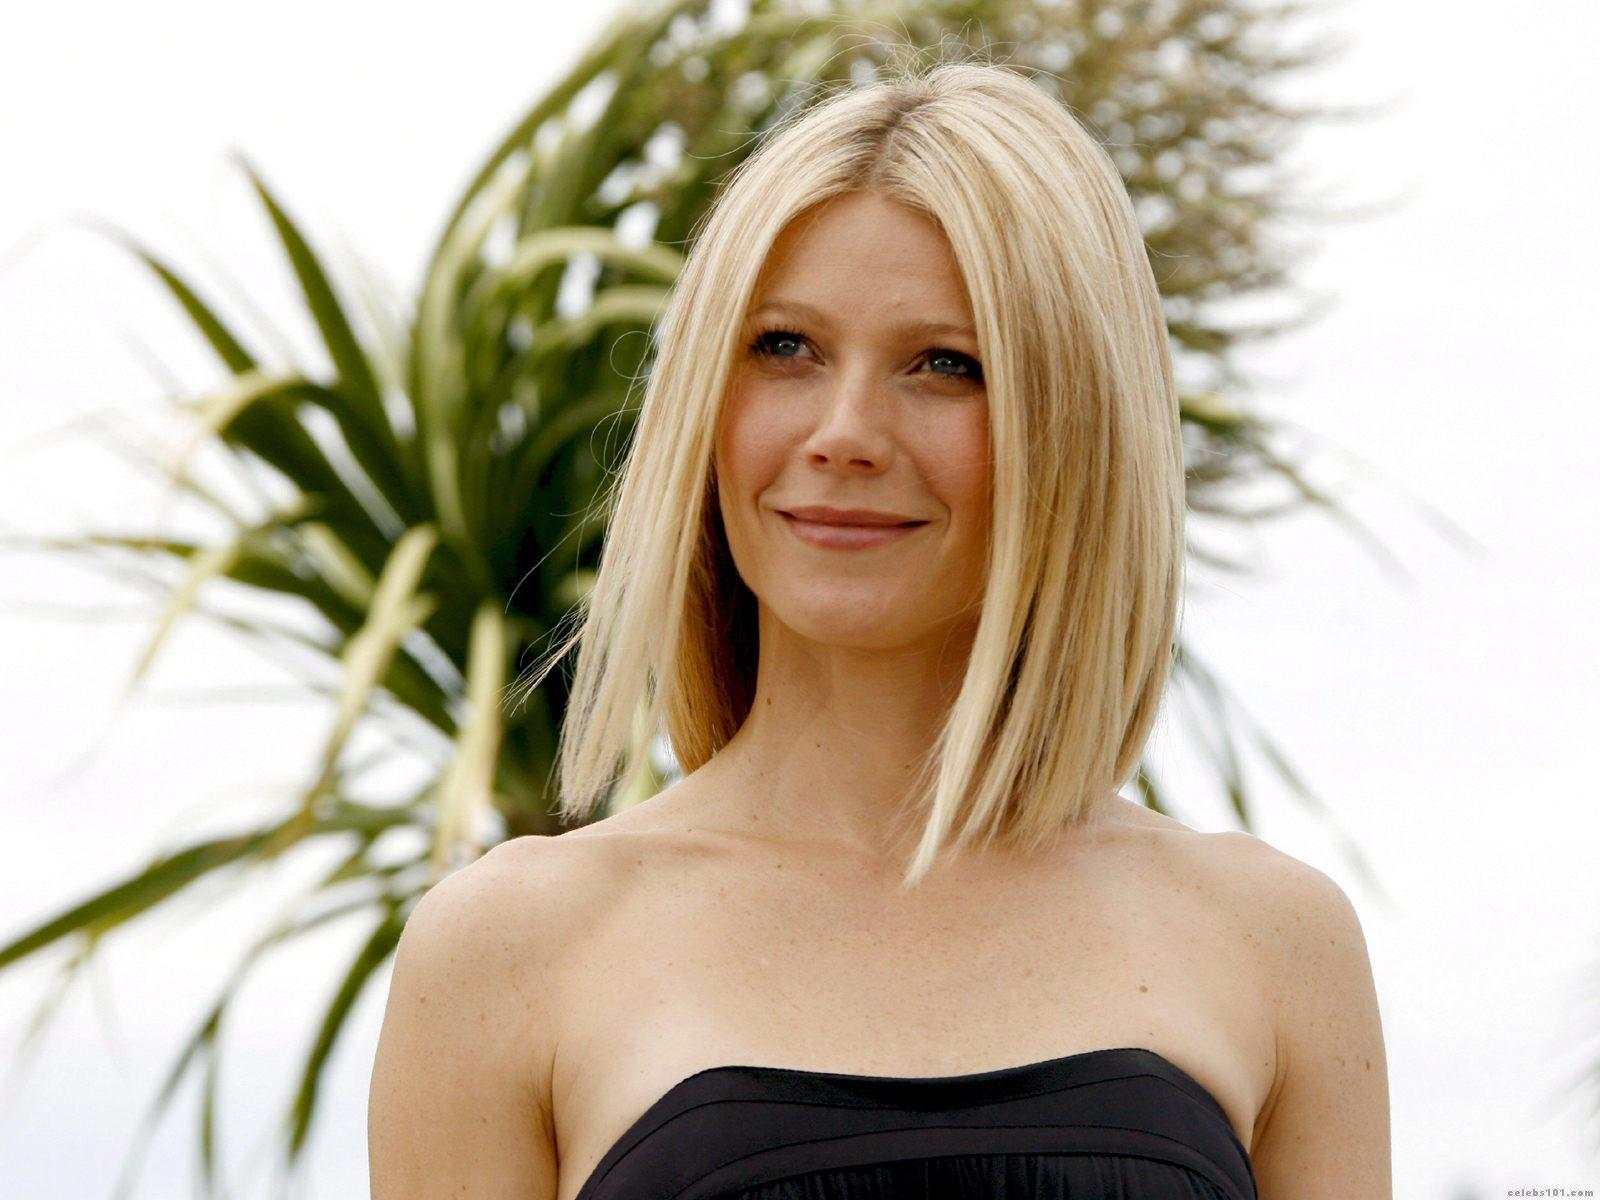 gwyneth-paltrow-age-height-weight